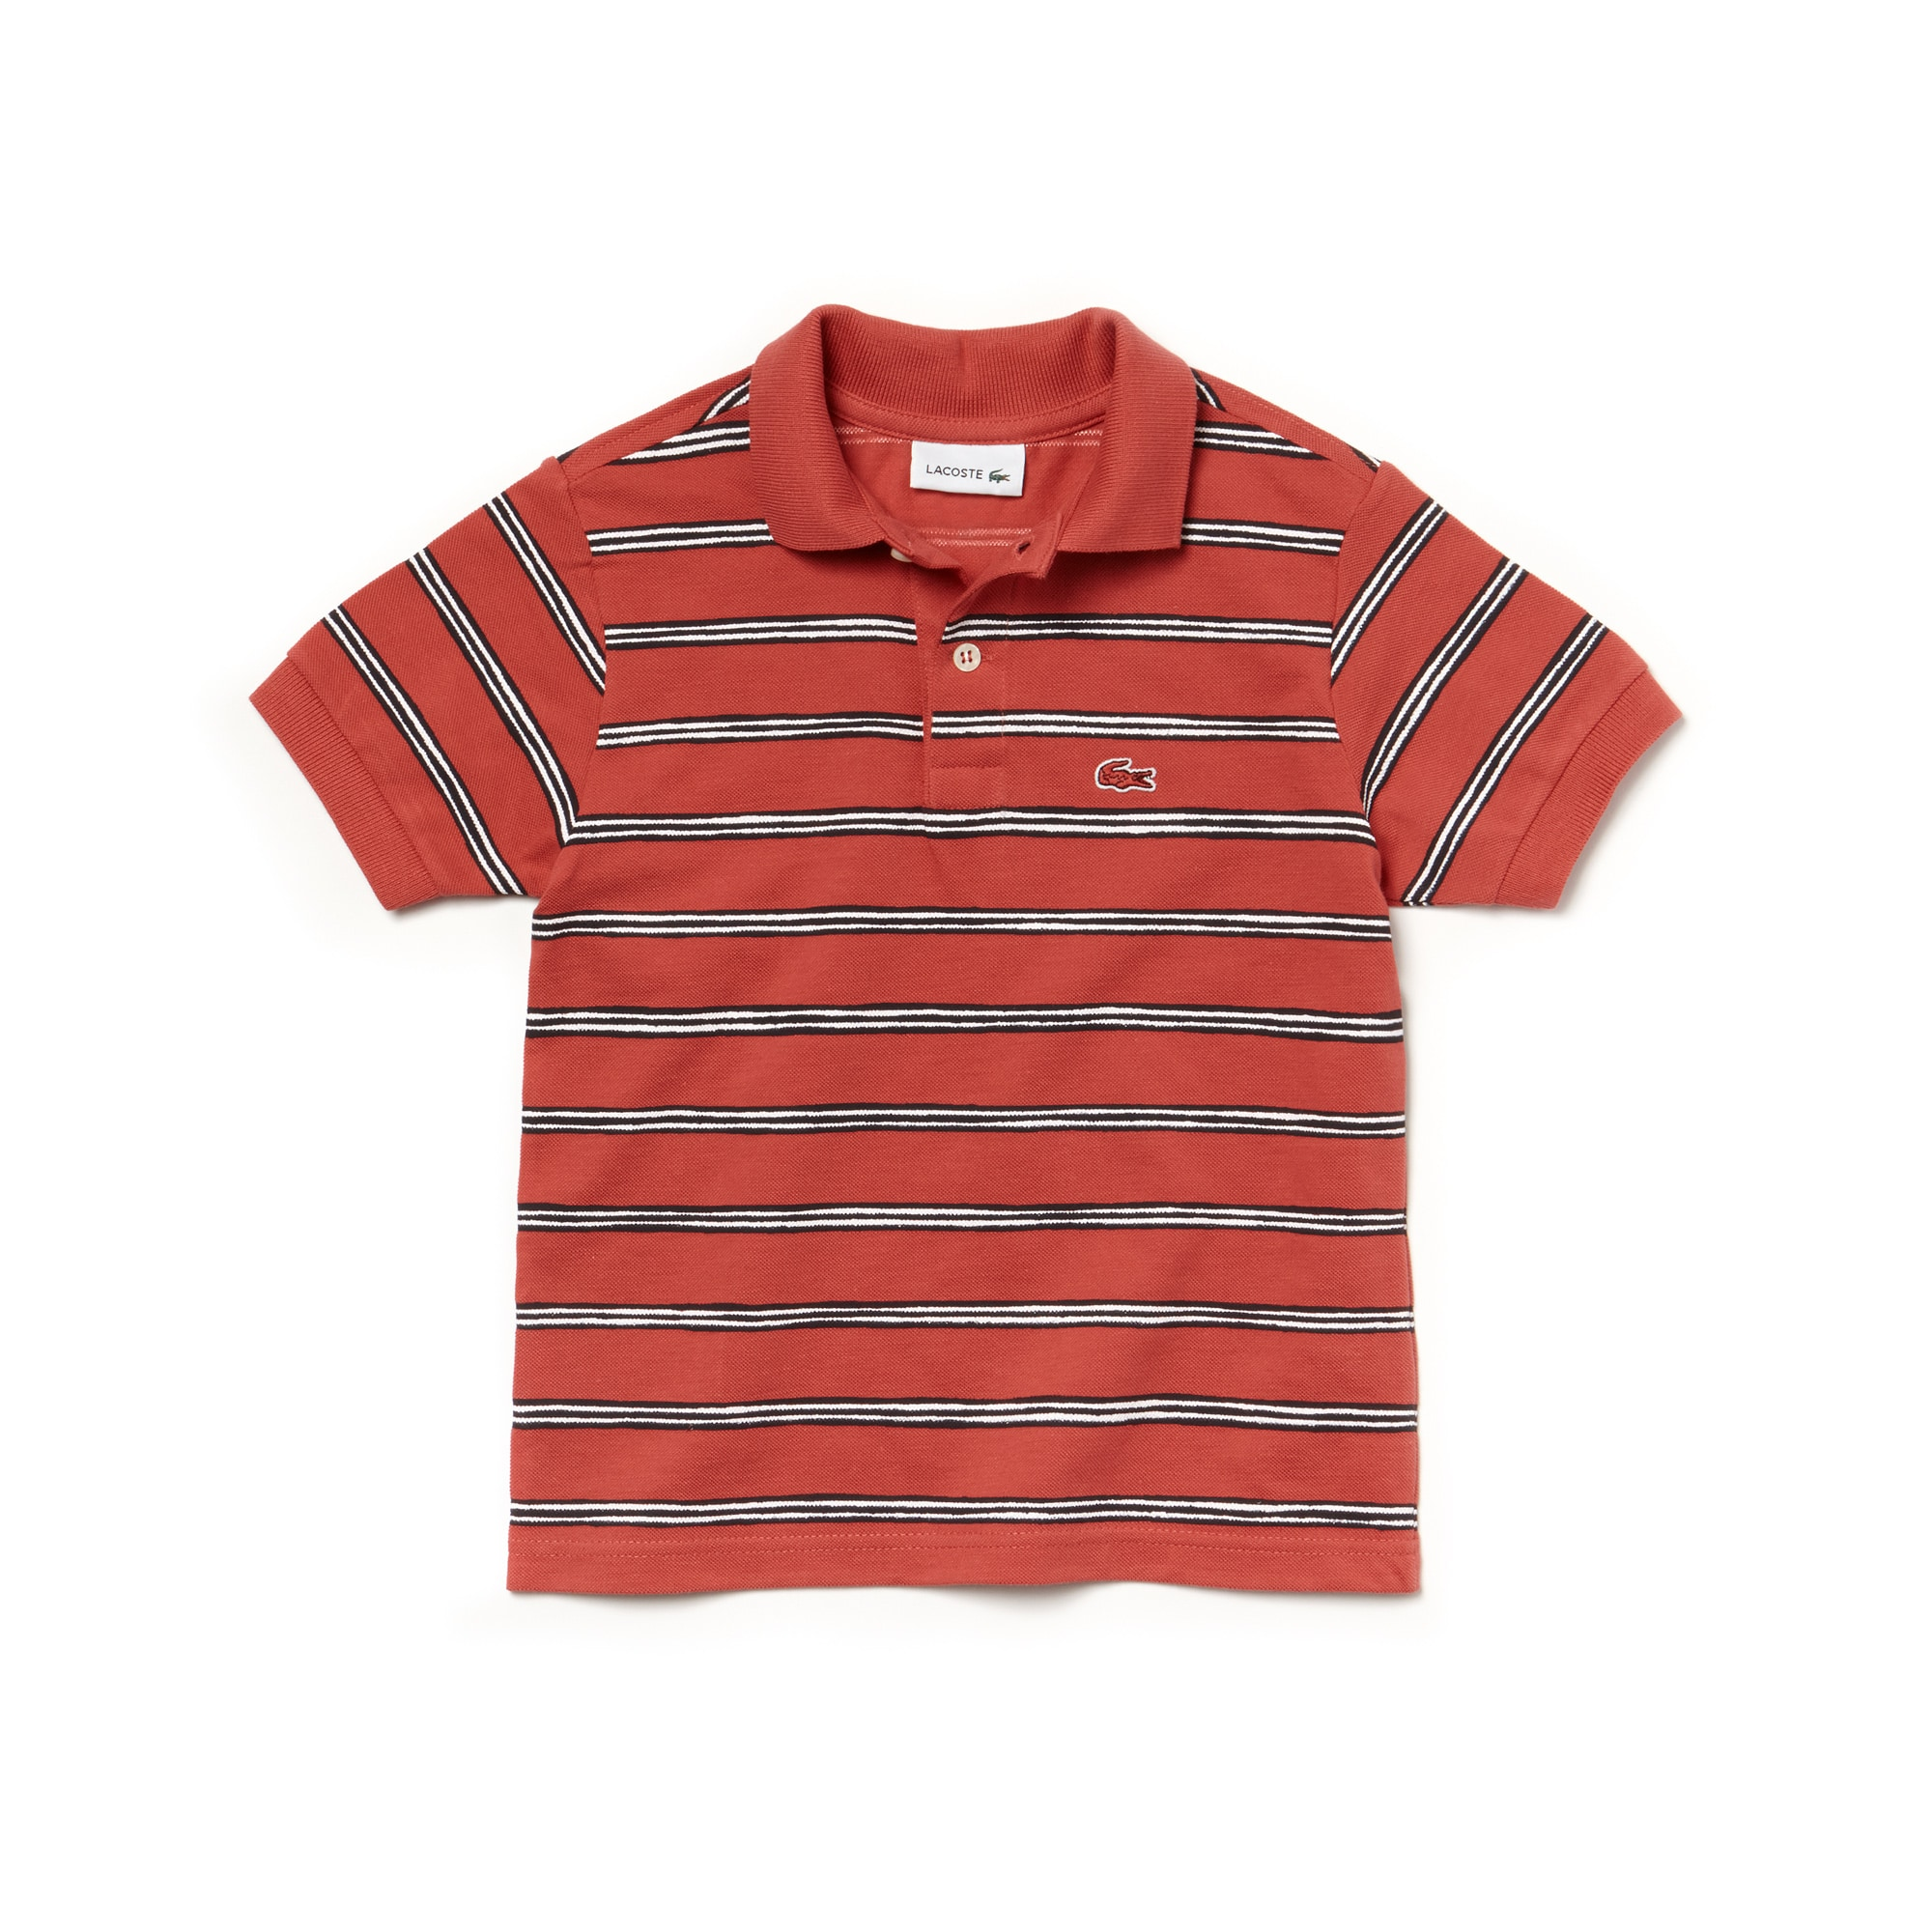 6ec6ffb3b Boy's Polo Shirts | The Lacoste Polo For Kids | LACOSTE